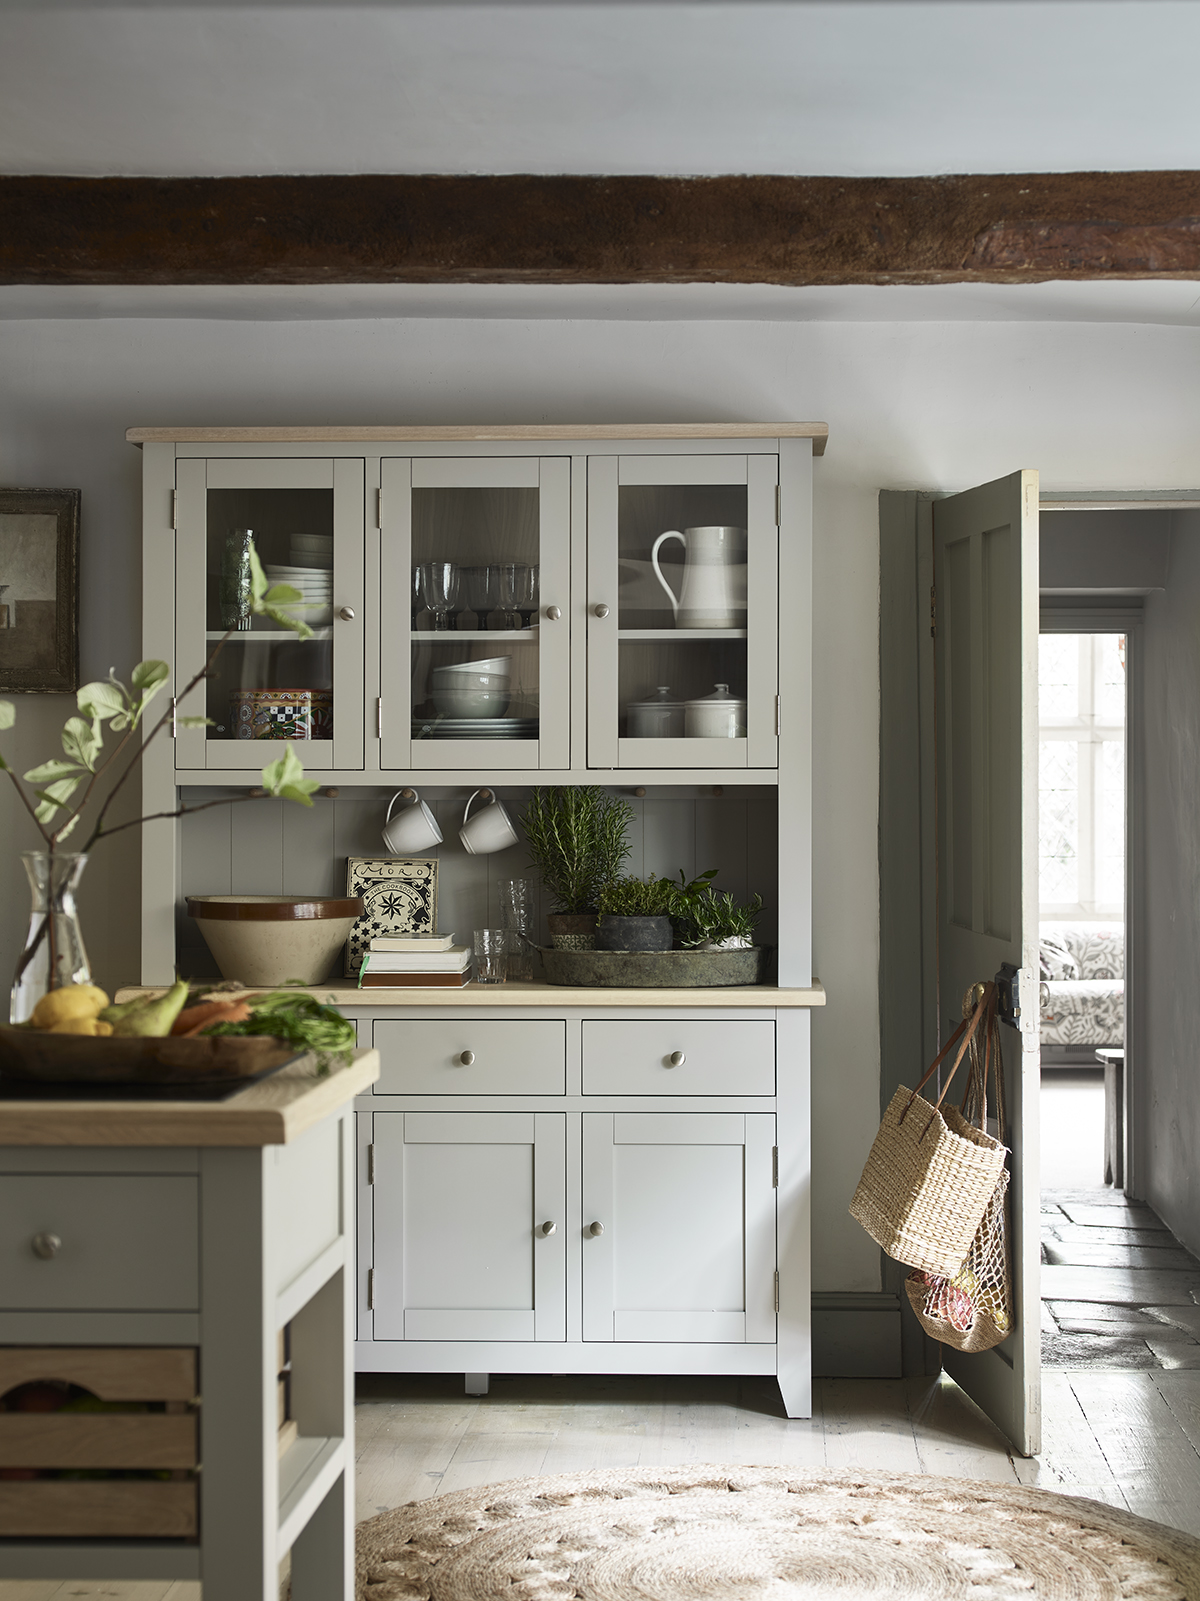 Our Chester kitchen dresser offers open and closed storage